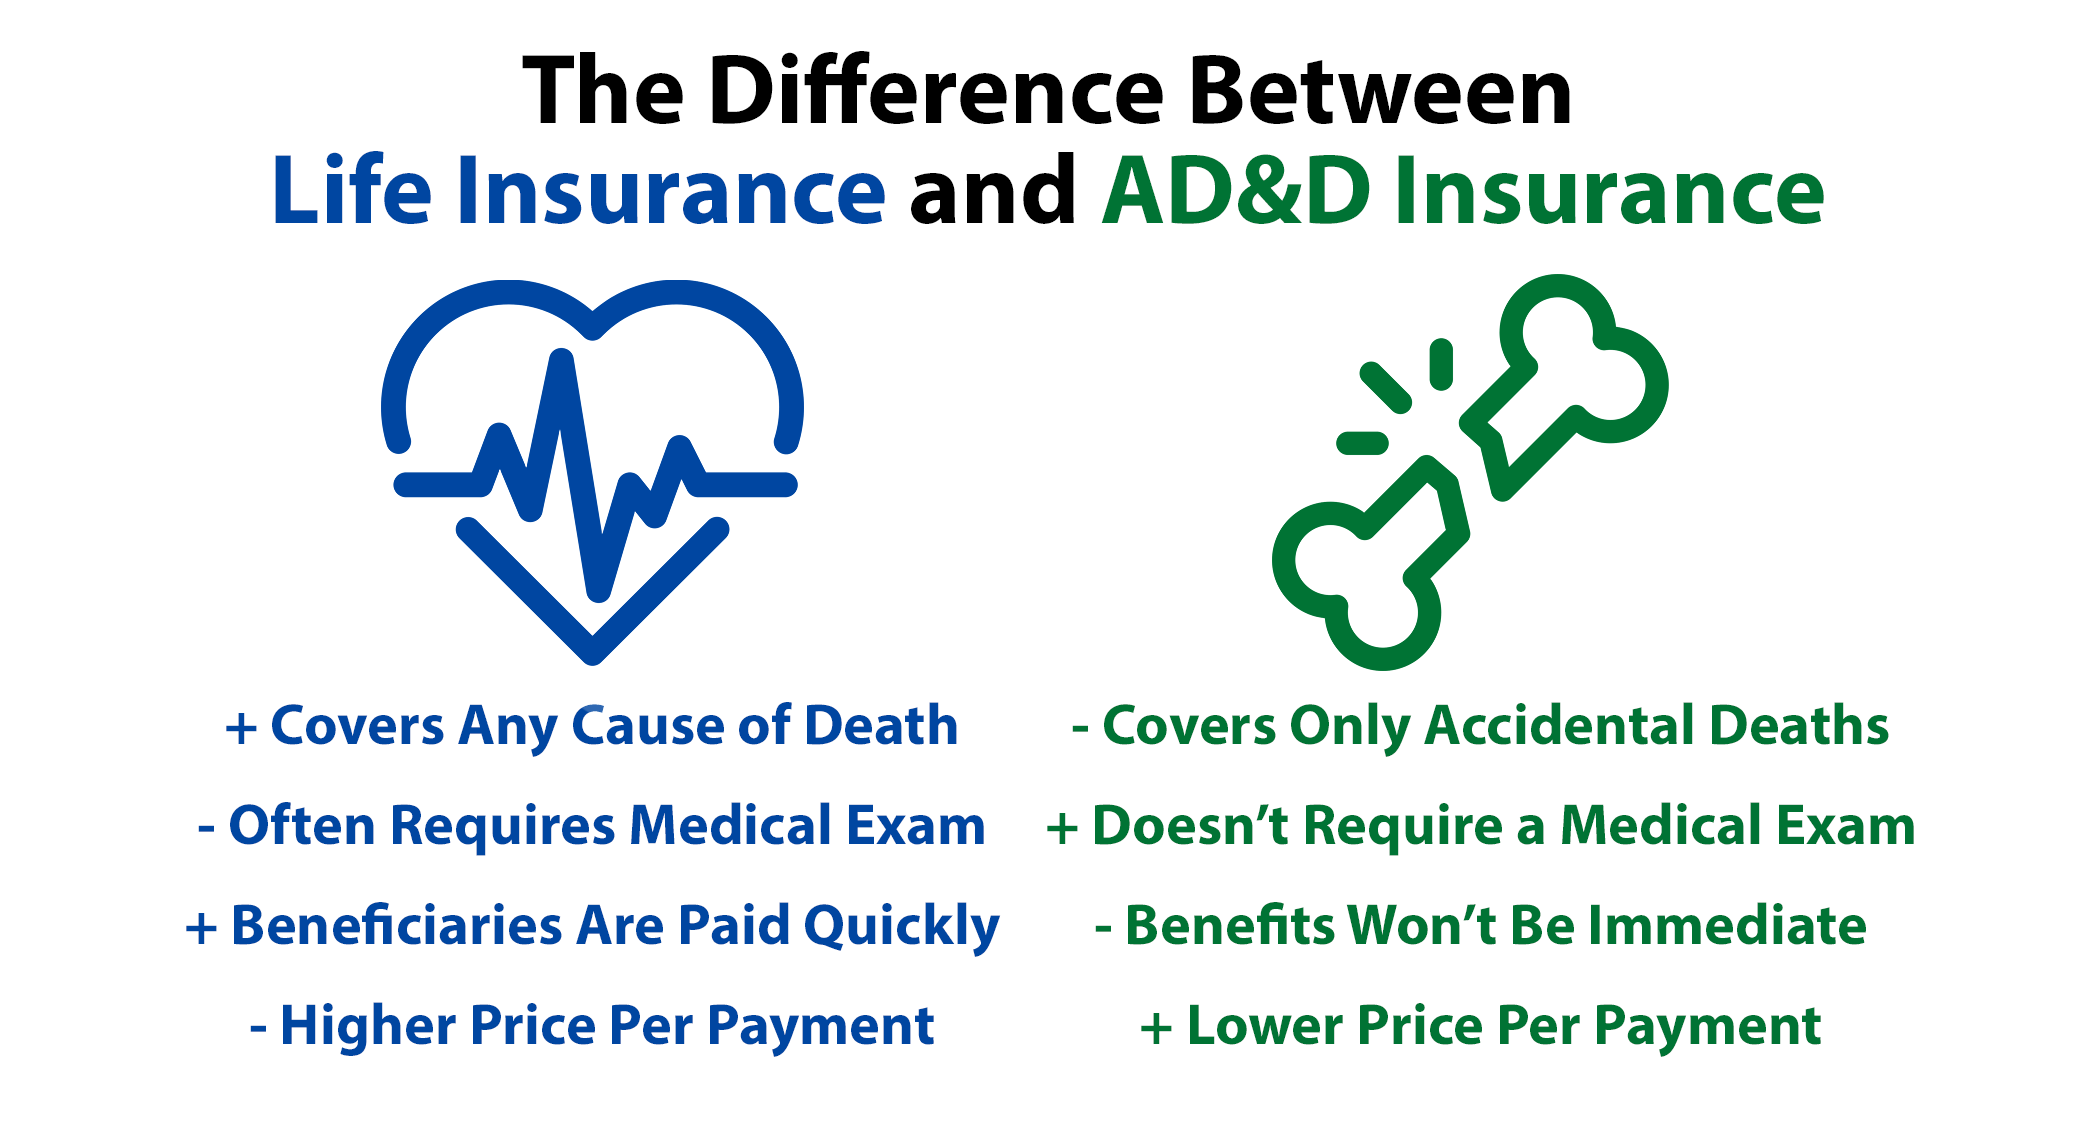 AD+D and life insurance coverage are two very different plans that cover two very different categories of death.